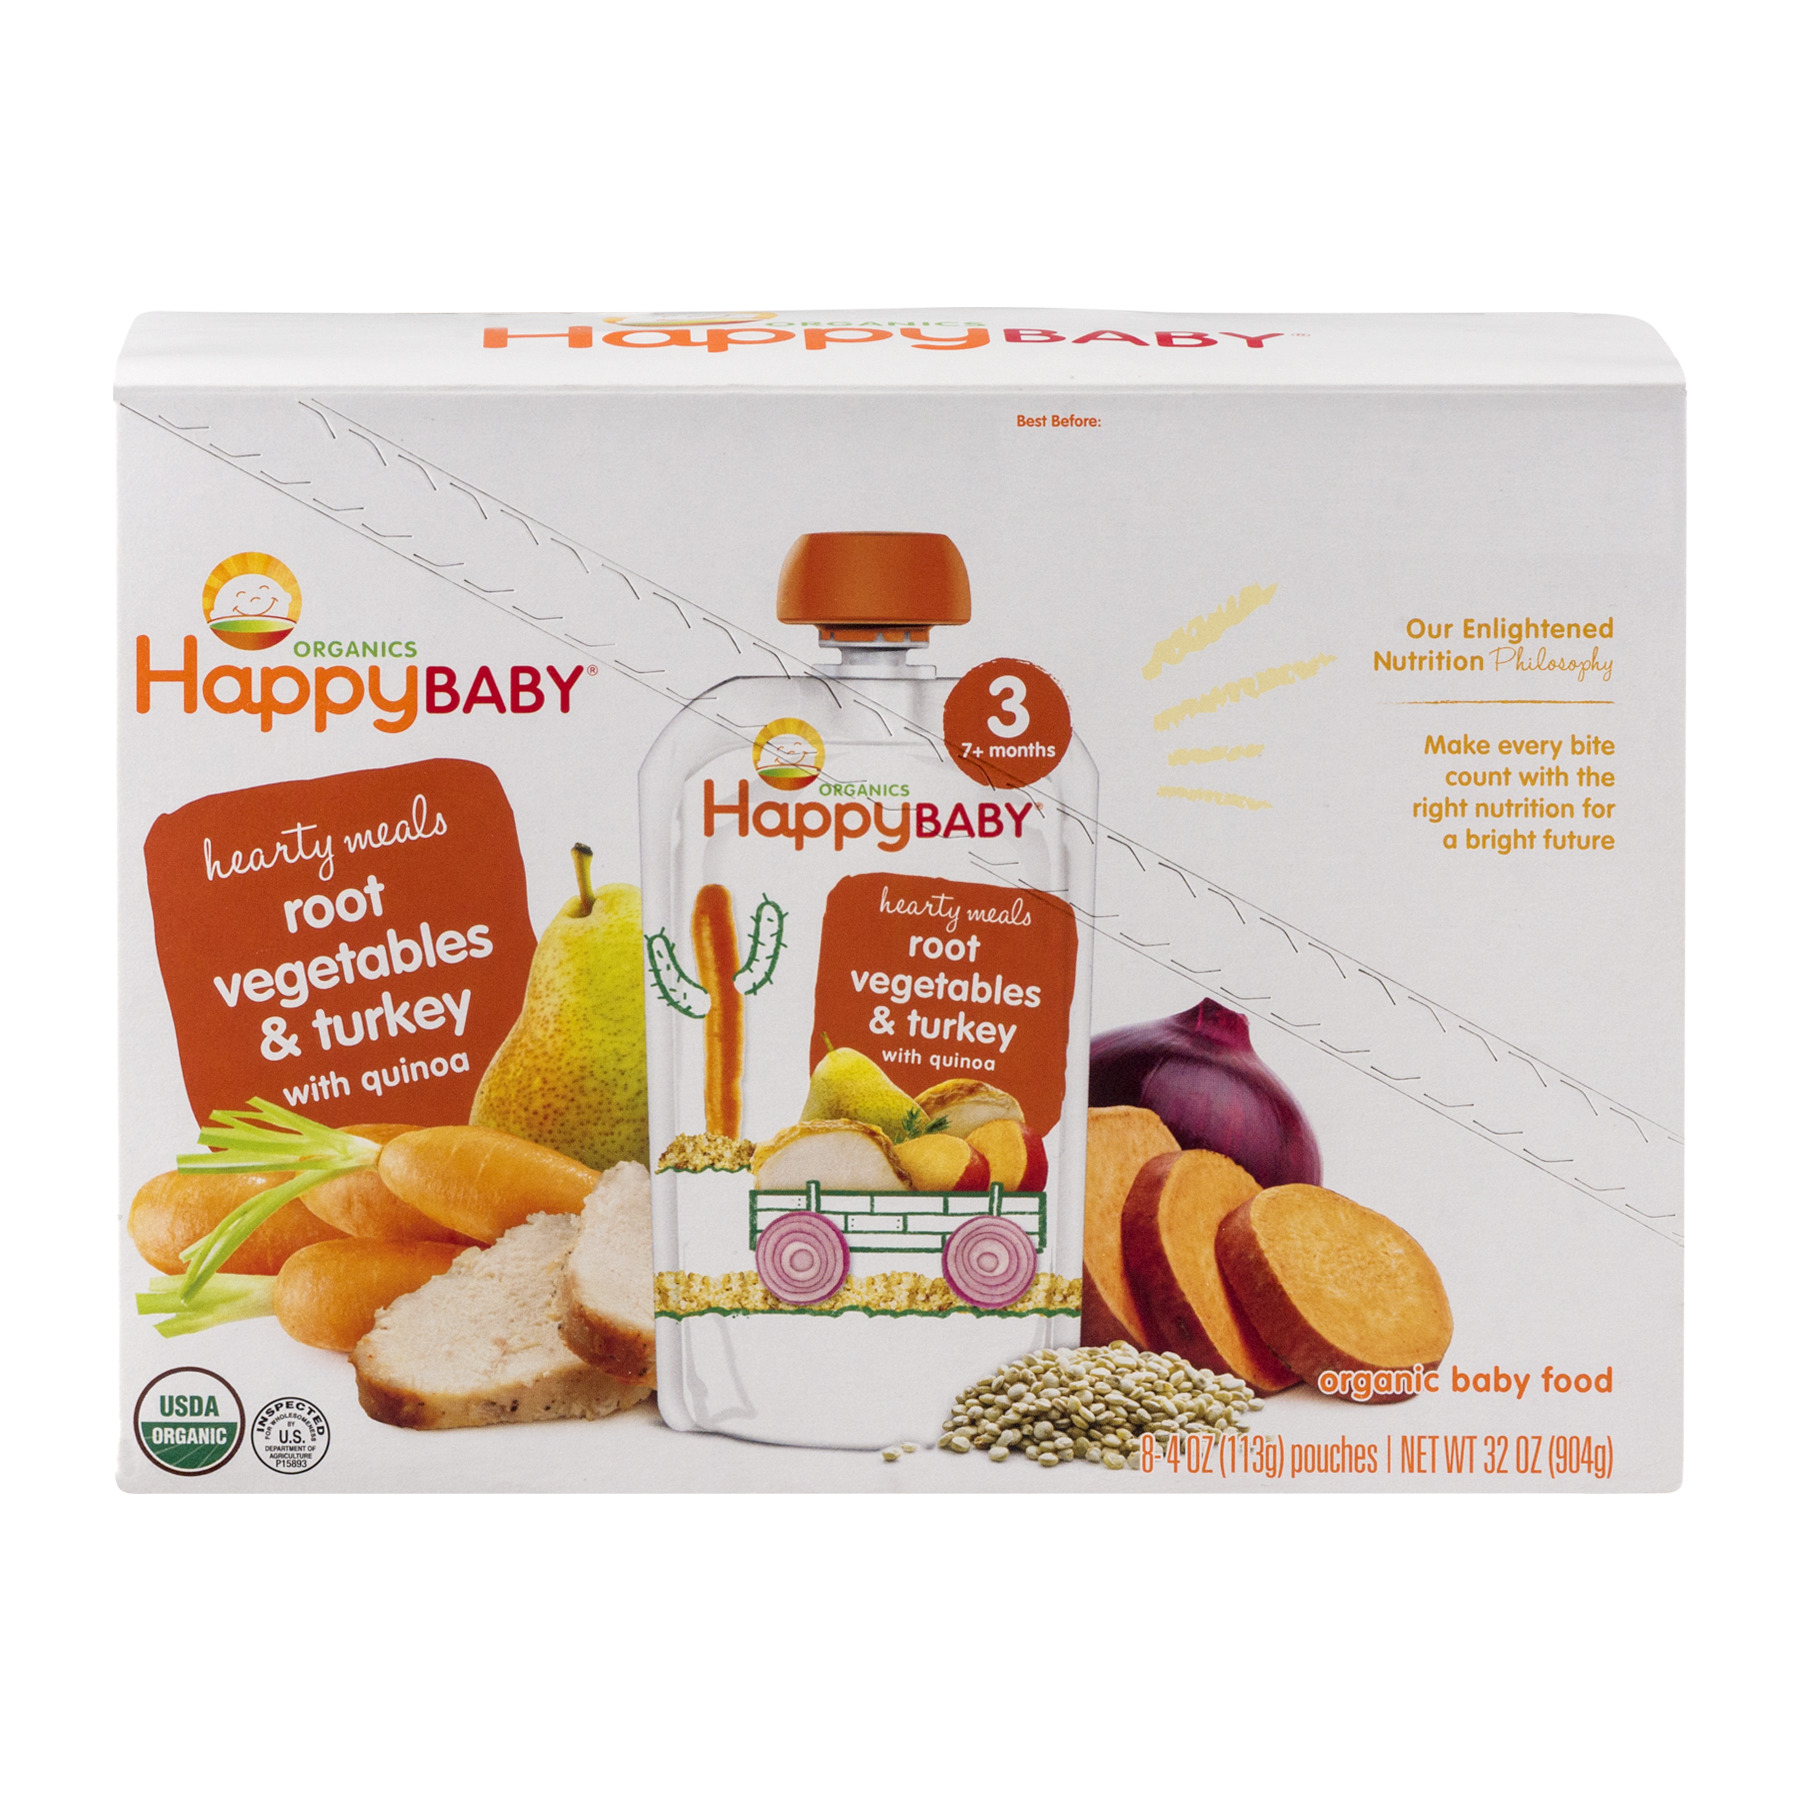 HappyBaby Organics Baby Food Hearty Meals 3 Root Vegetables & Turkey - 8 CT4.0 OZ